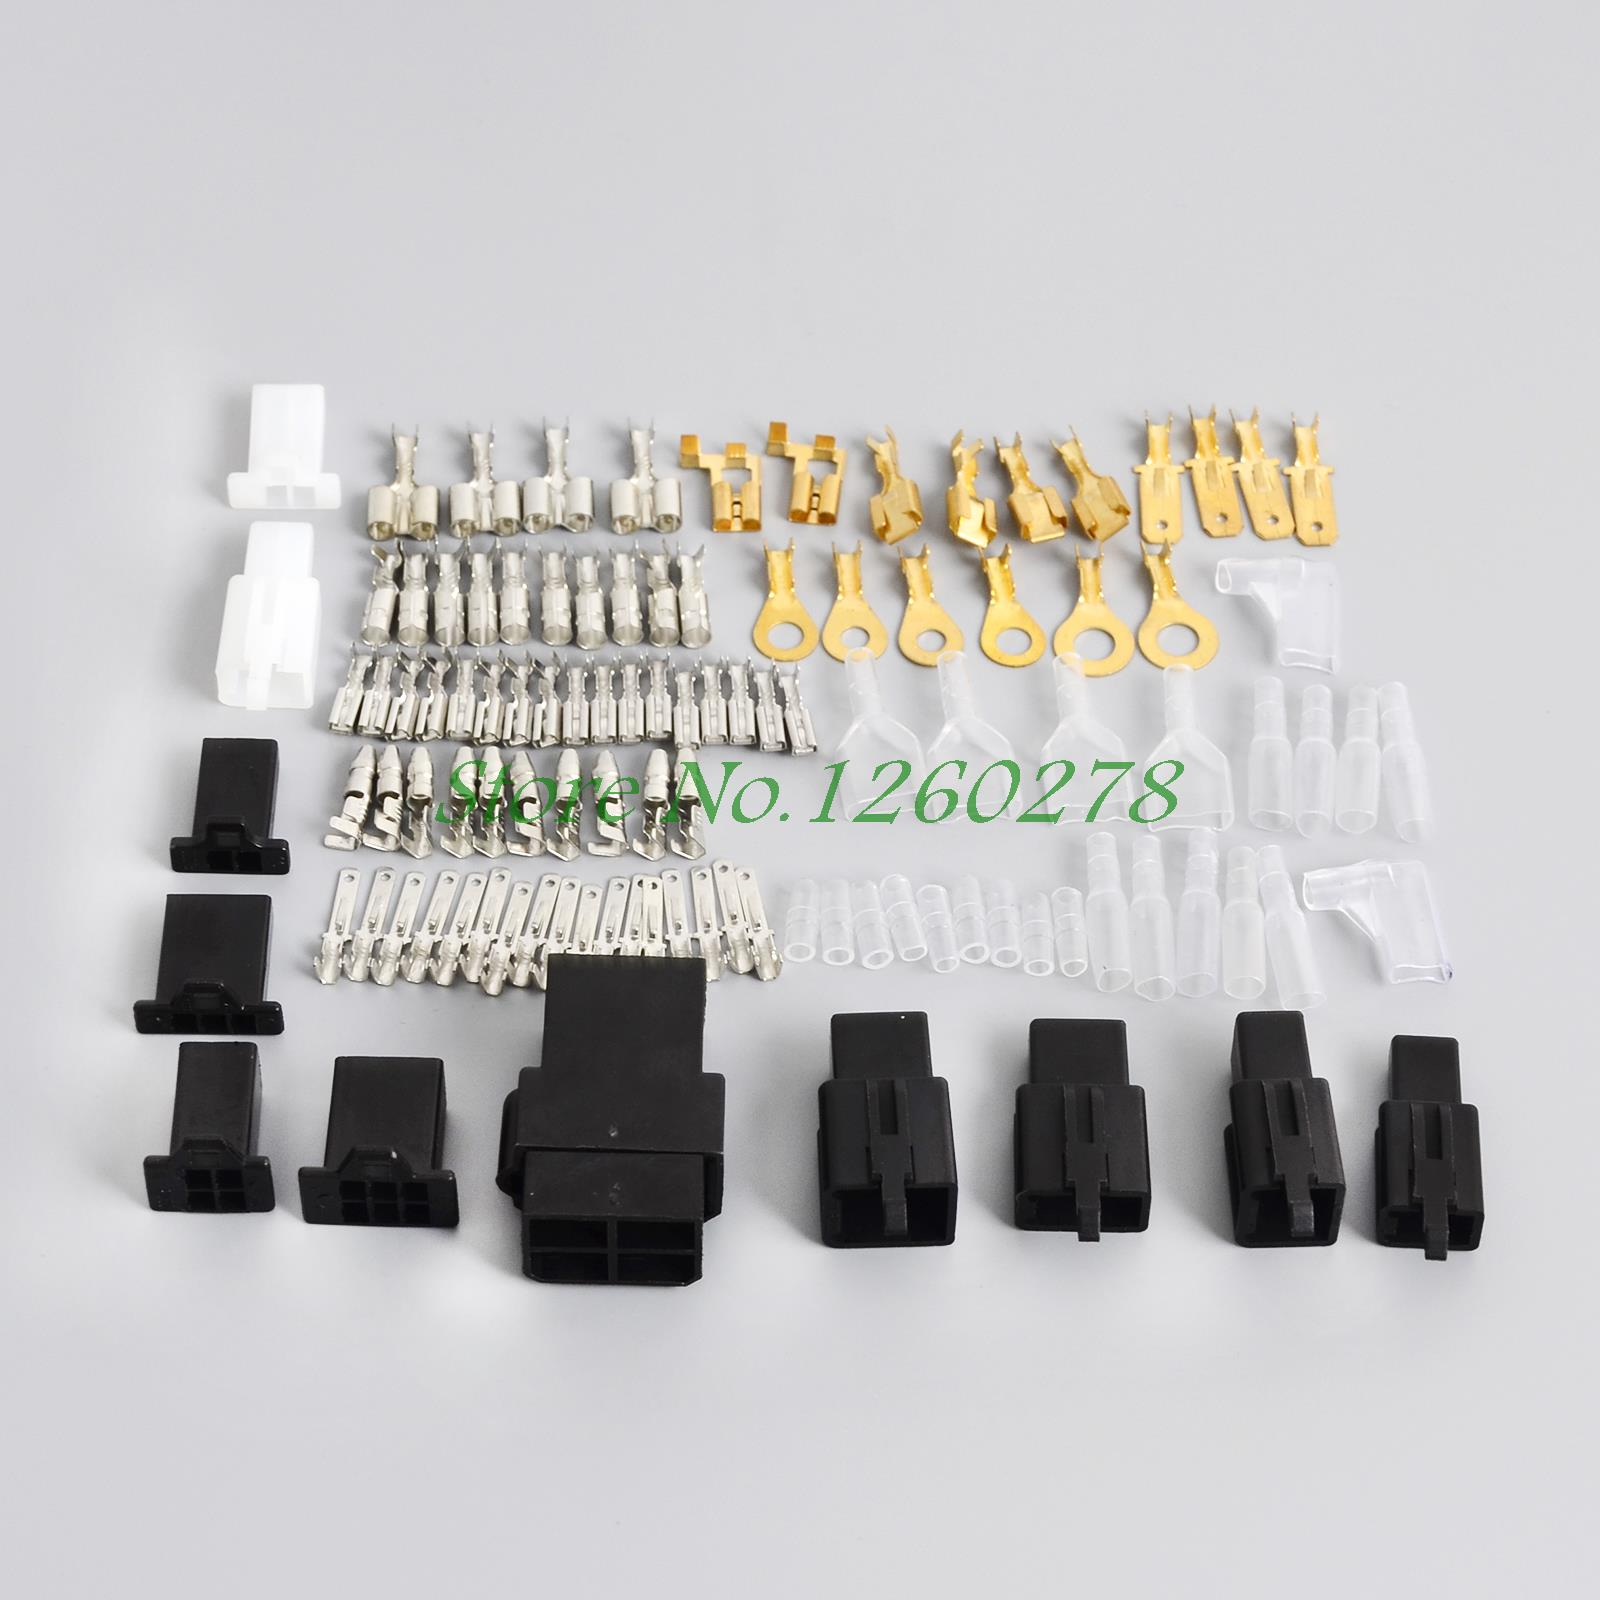 Universal Motorcycle Electrical Wiring Harness Loom Repair Kit Plugs Bullets For Honda Yamaha Suzuki Kawasaki New universal motorcycle electrical wiring harness loom repair kit universal motorcycle wiring harness kits at edmiracle.co